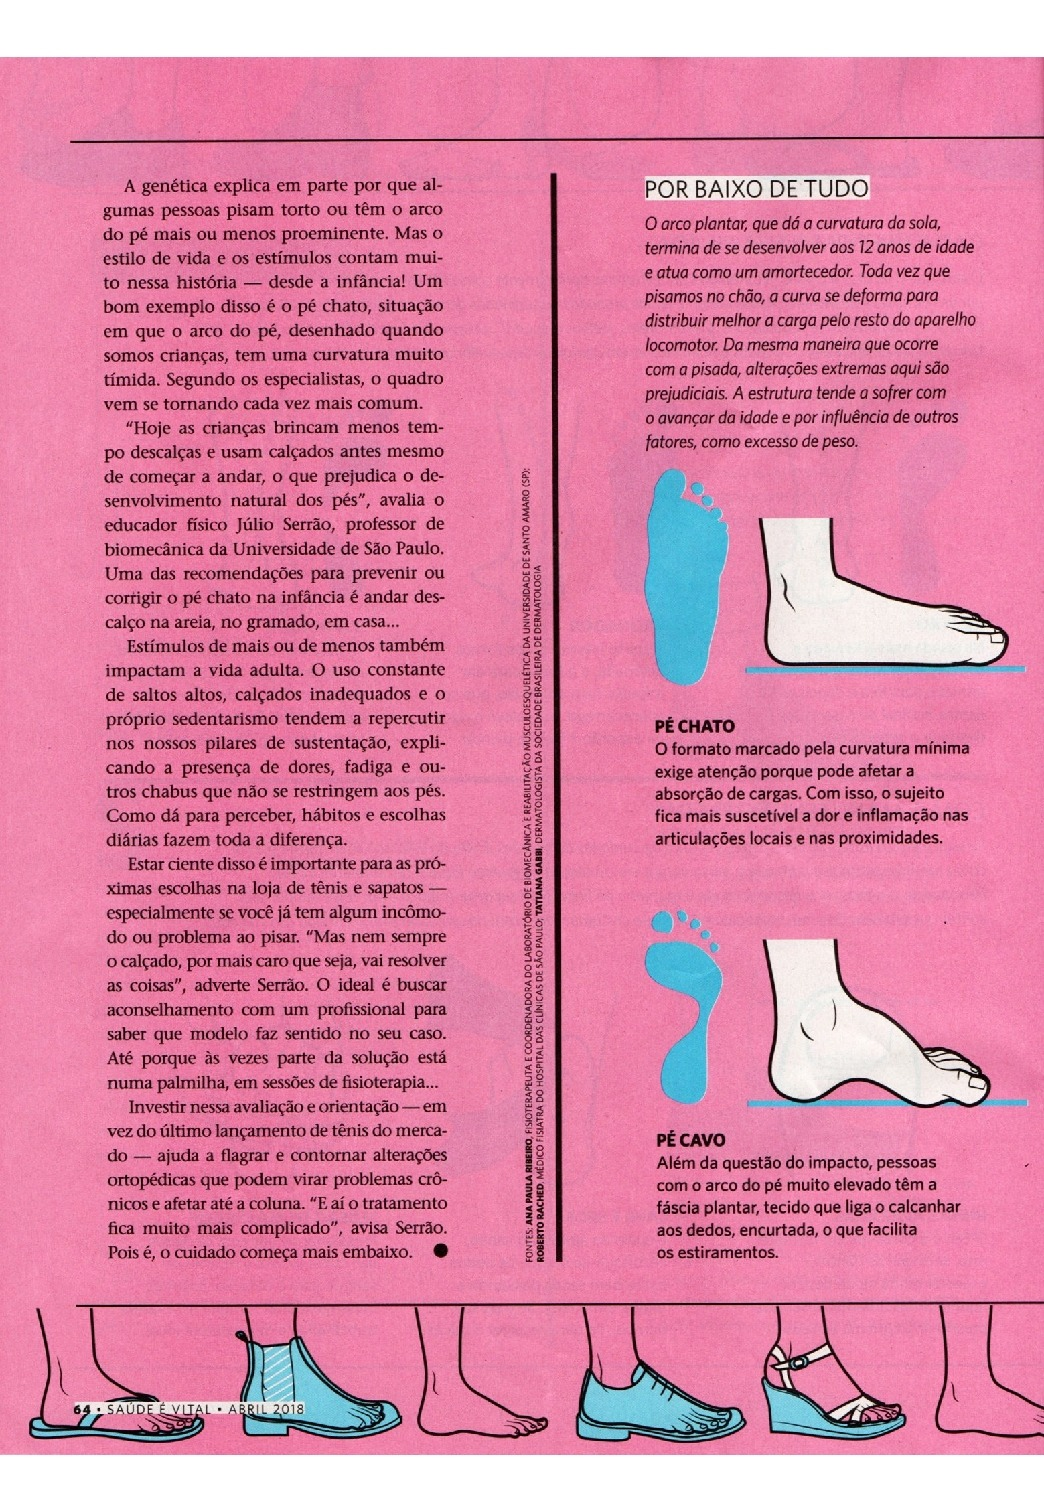 clipping-revista_saude-maio184